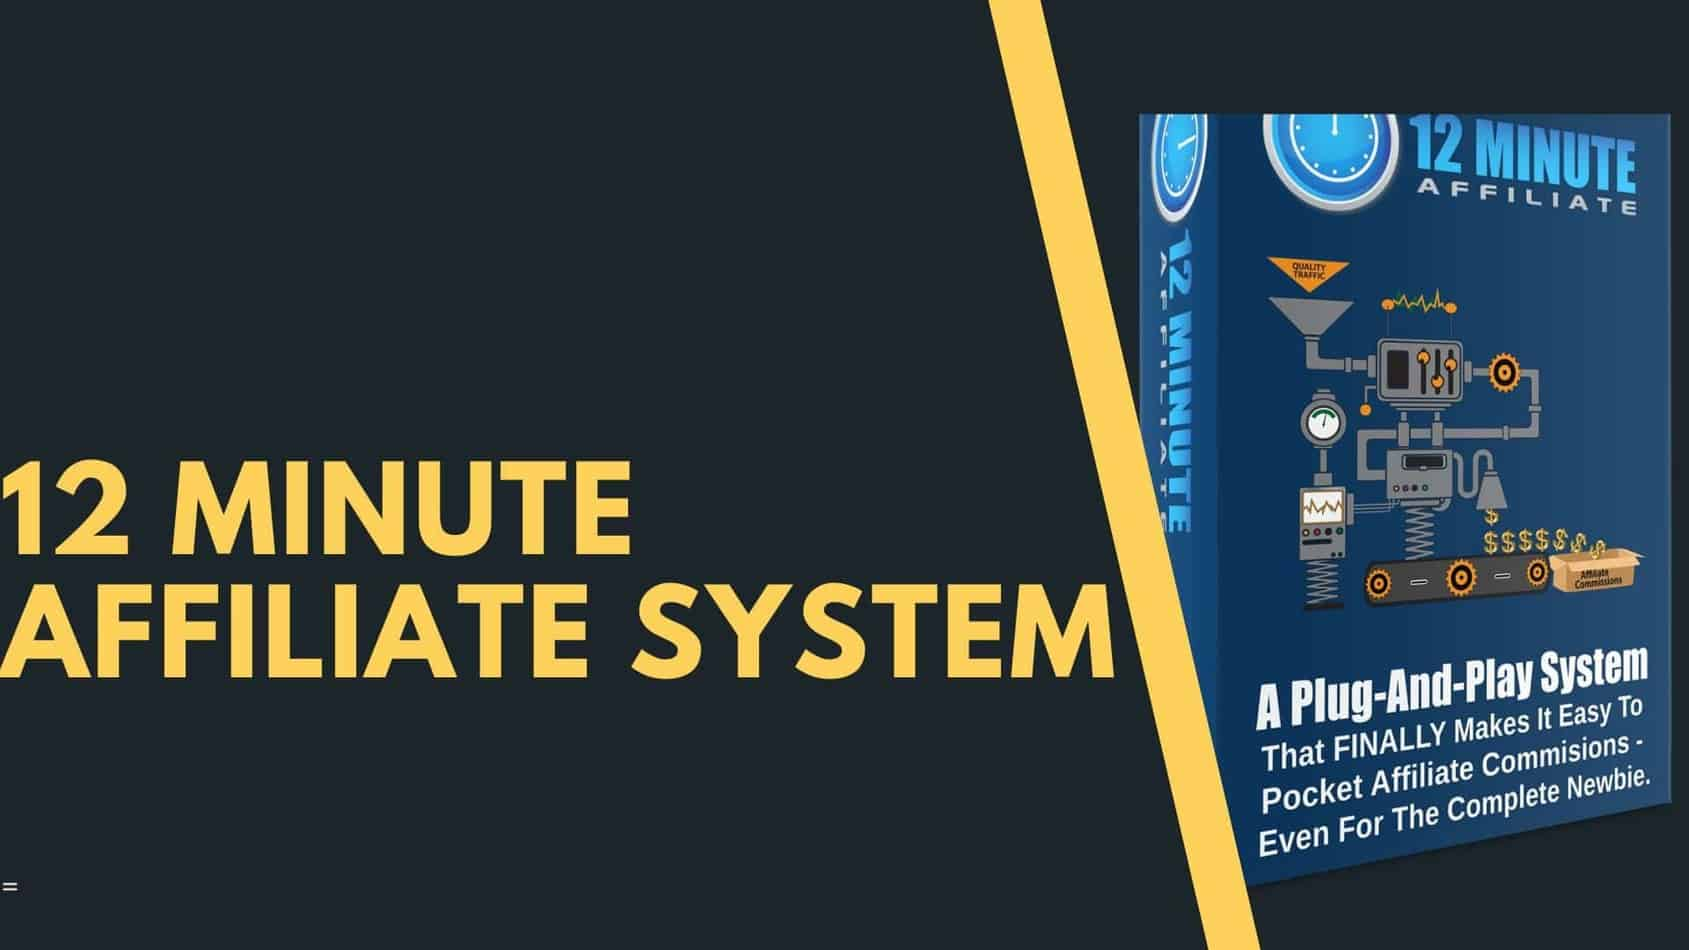 12 Minute Affiliate System Affiliate Marketing Price